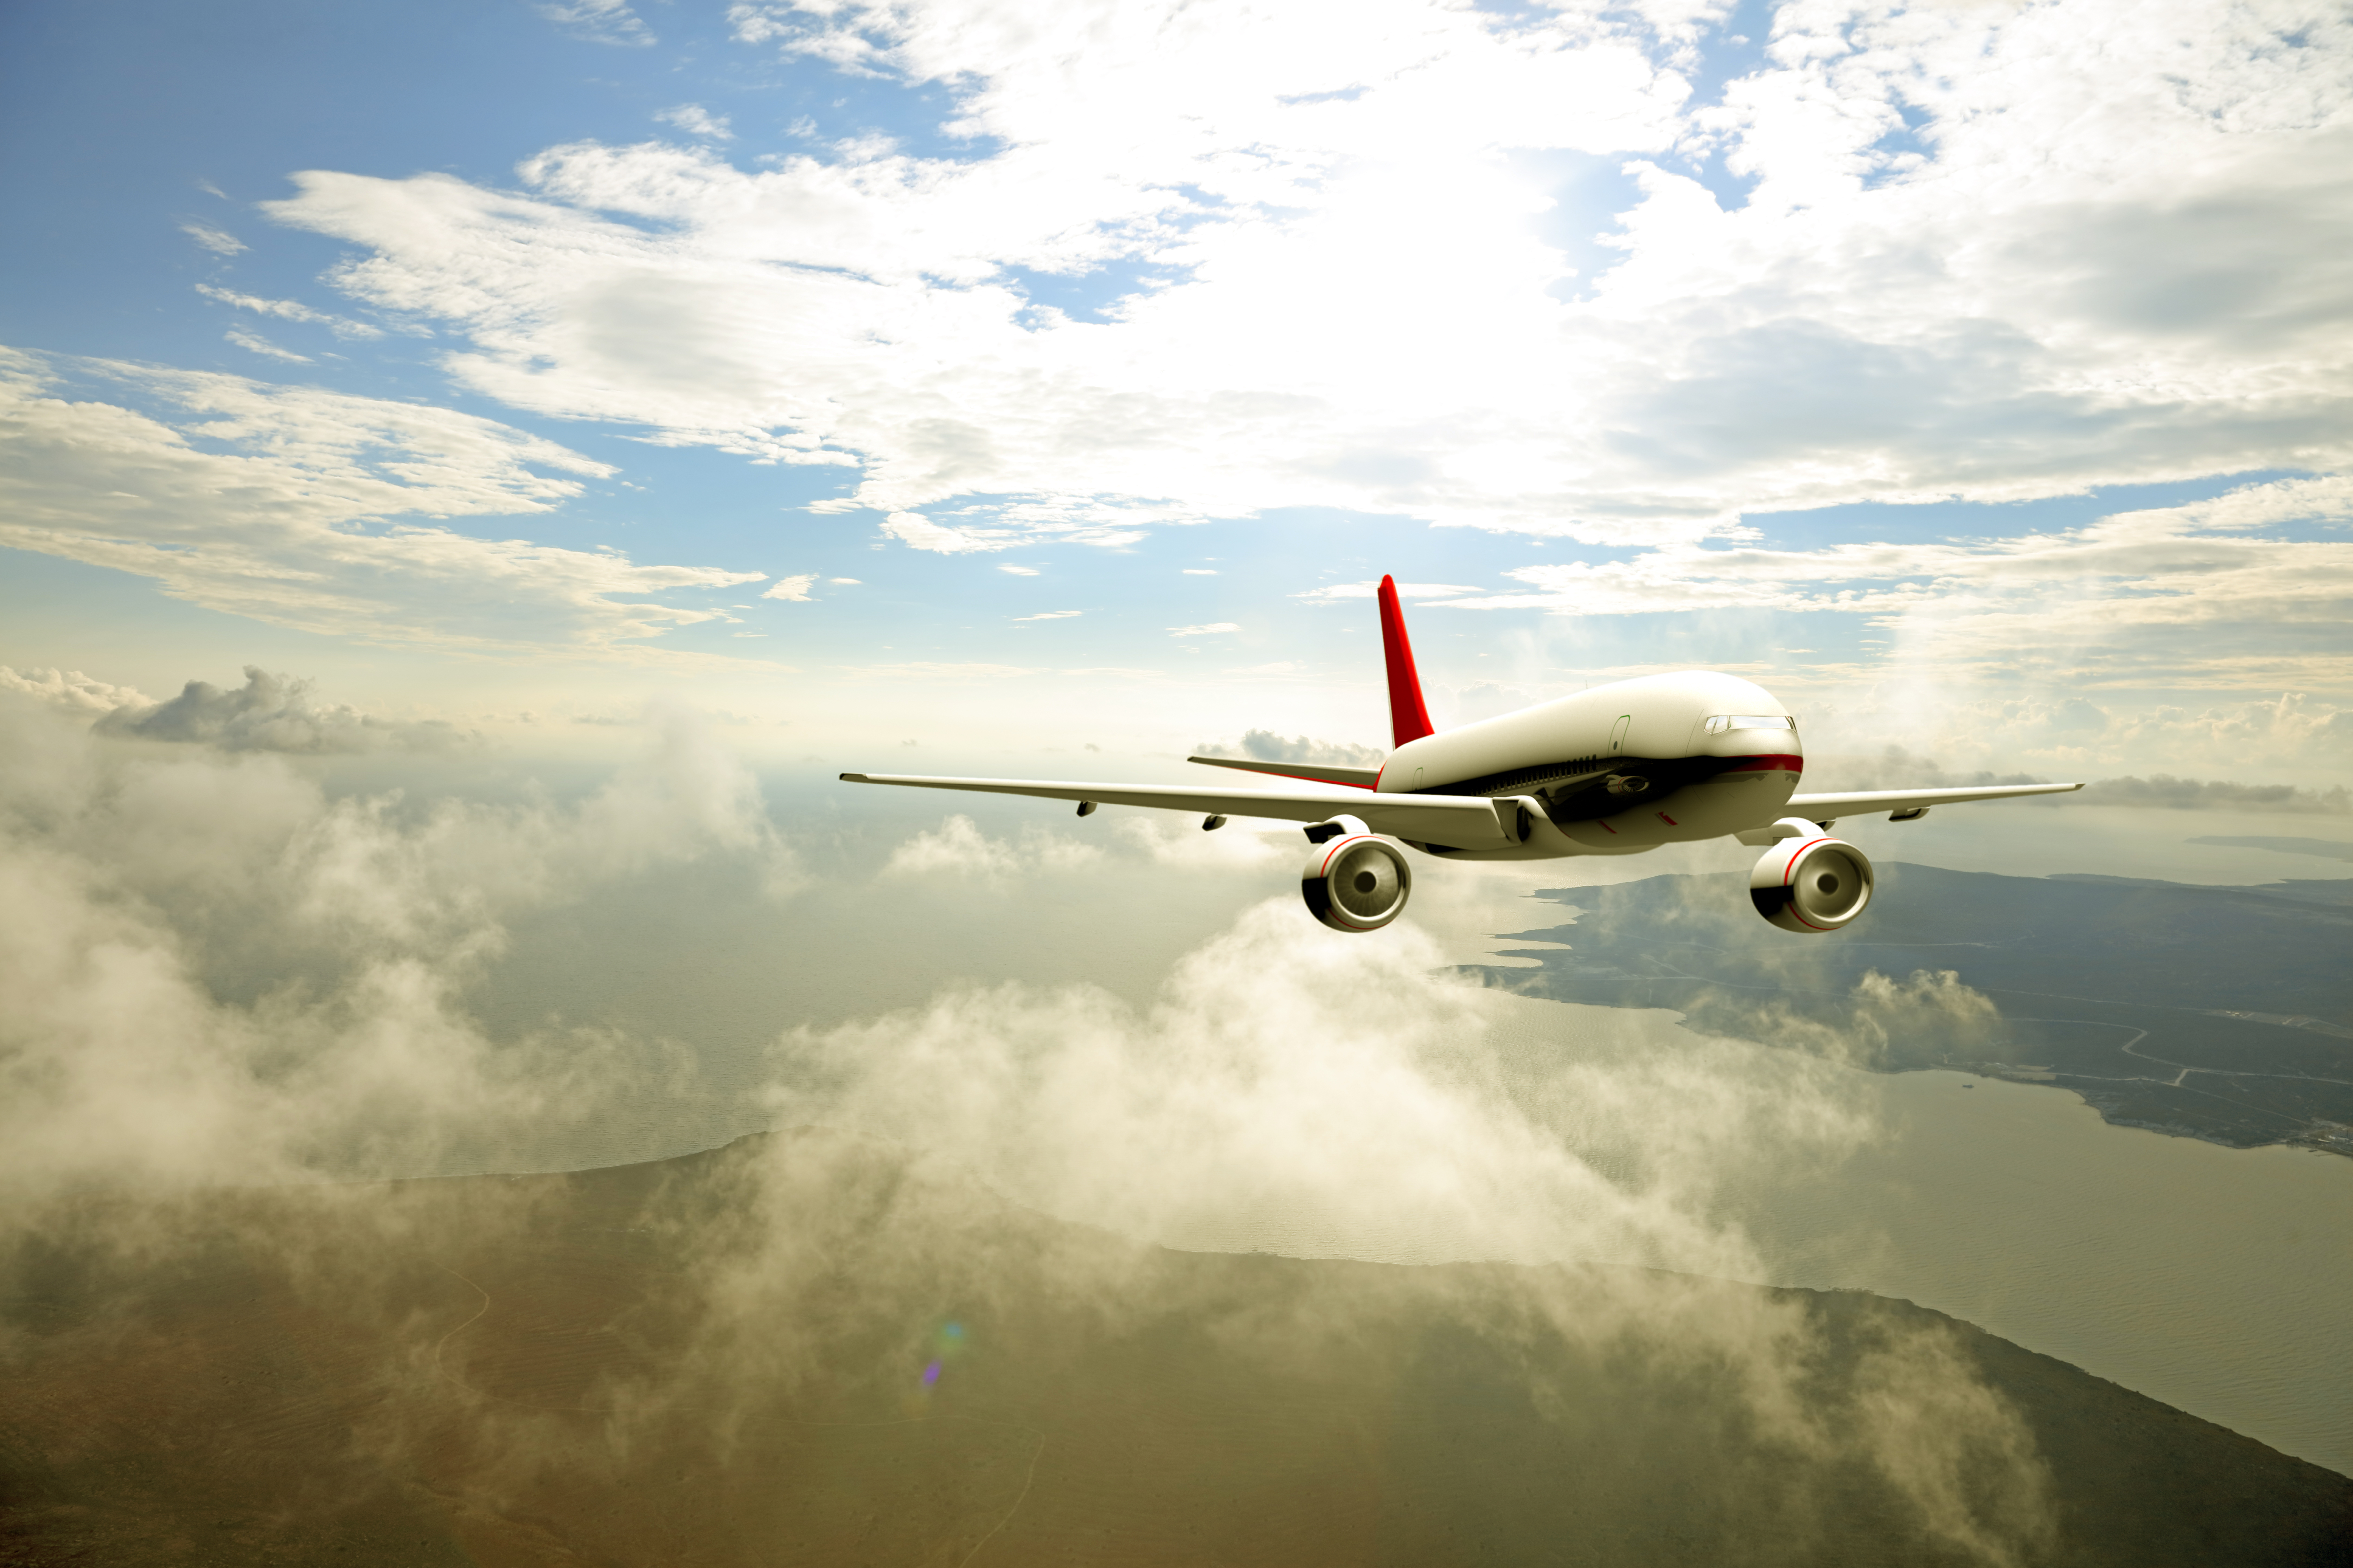 airplane flying above the above the puffy clouds with seascape